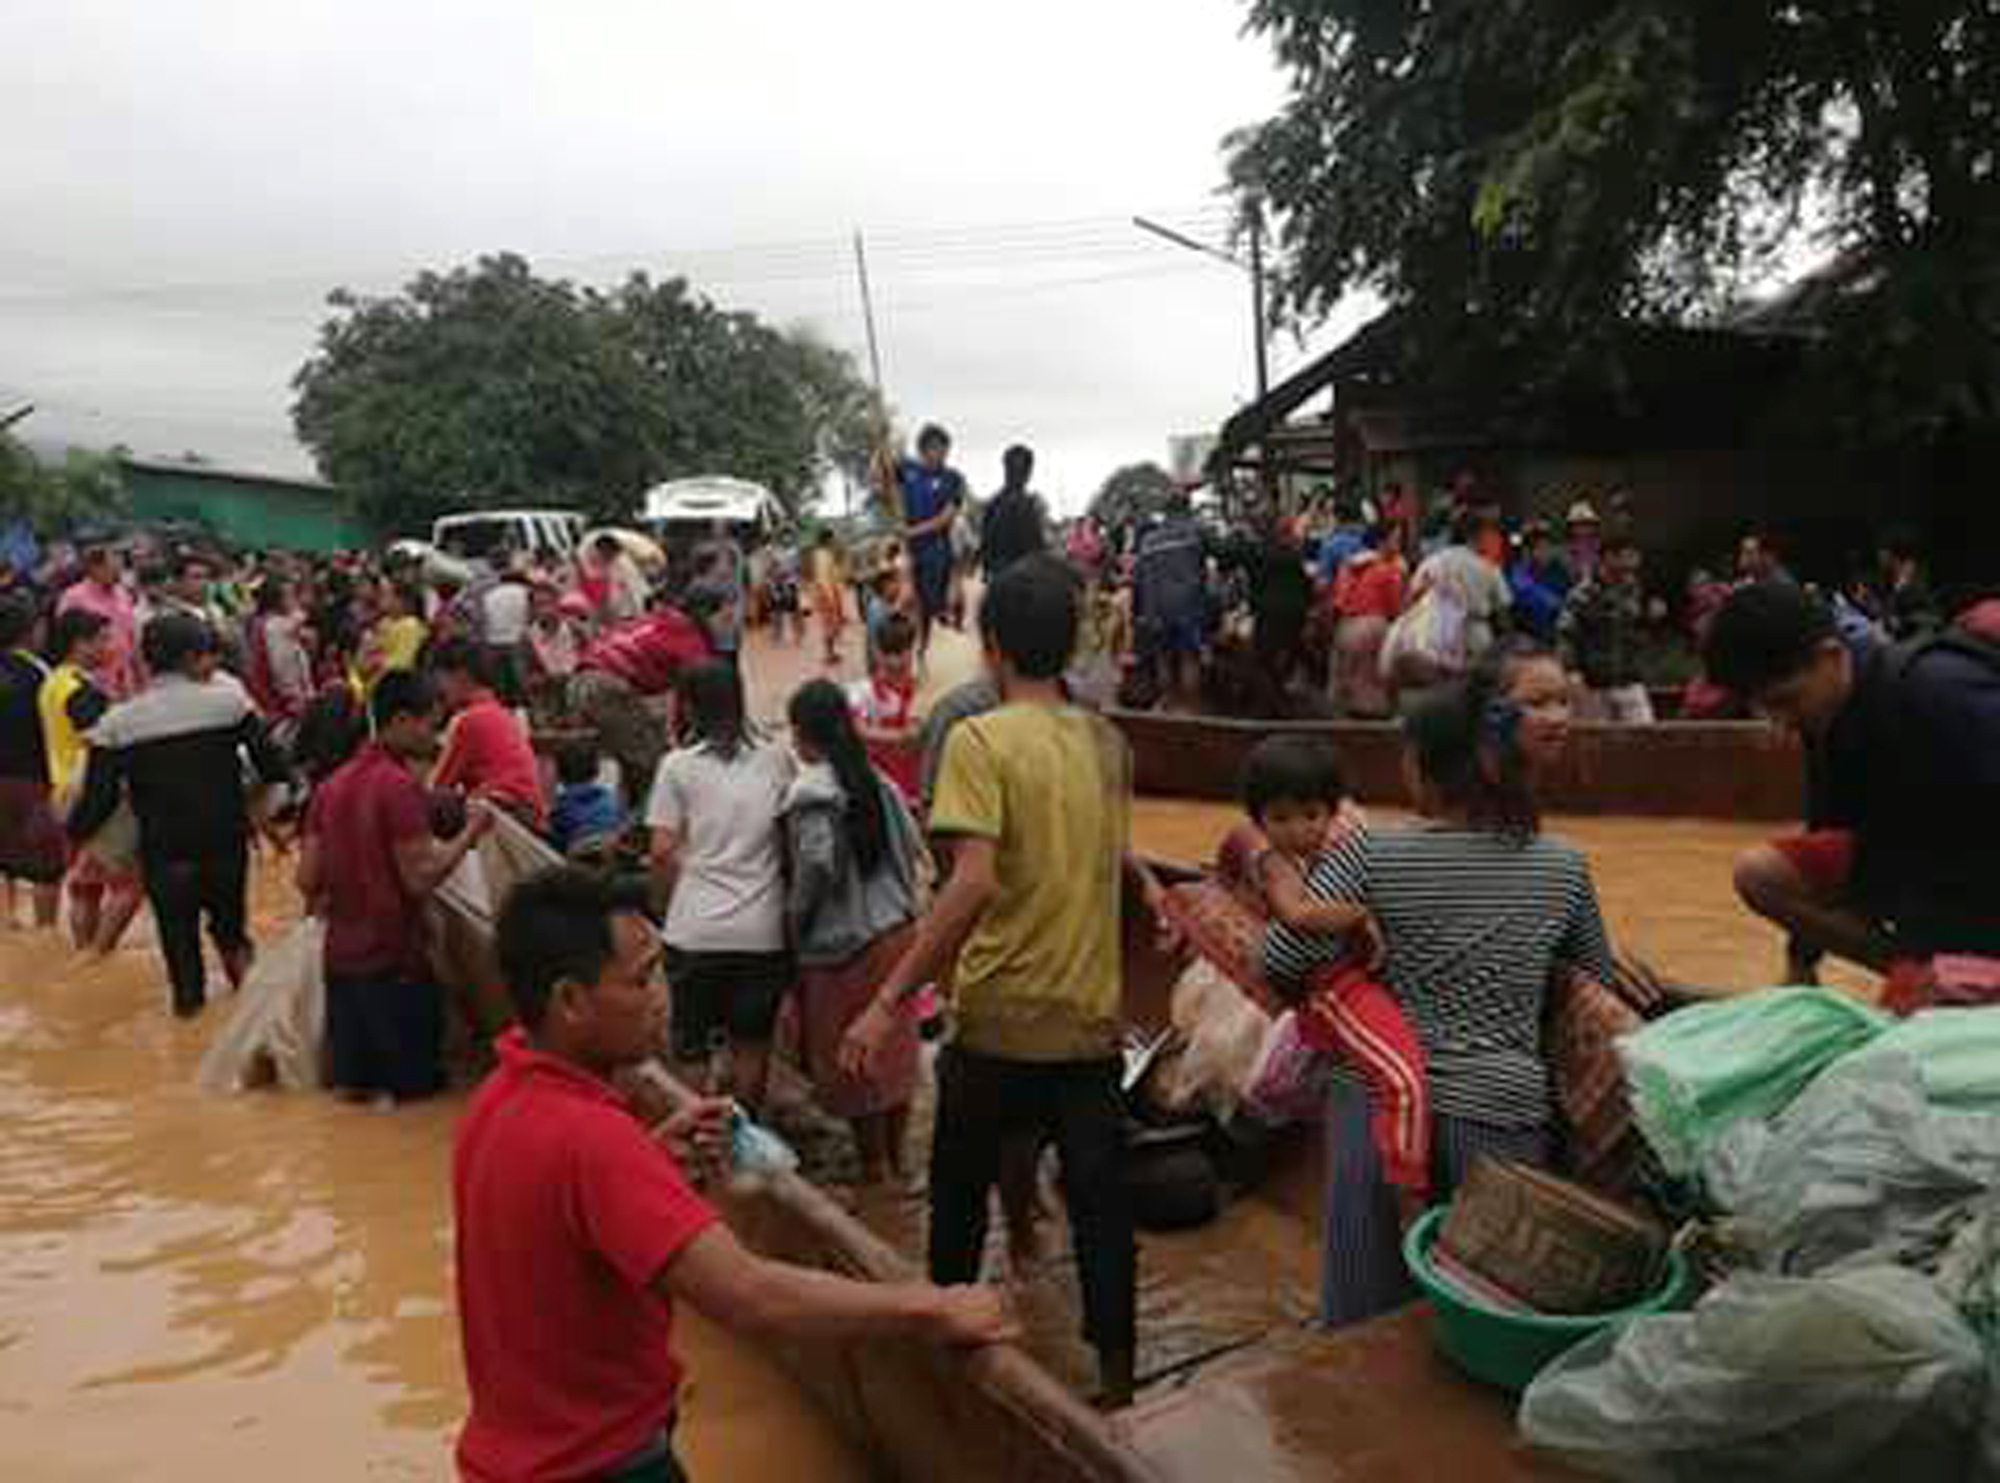 People are evacuated on July 24, 2018 after a dam collapsed in Laos.